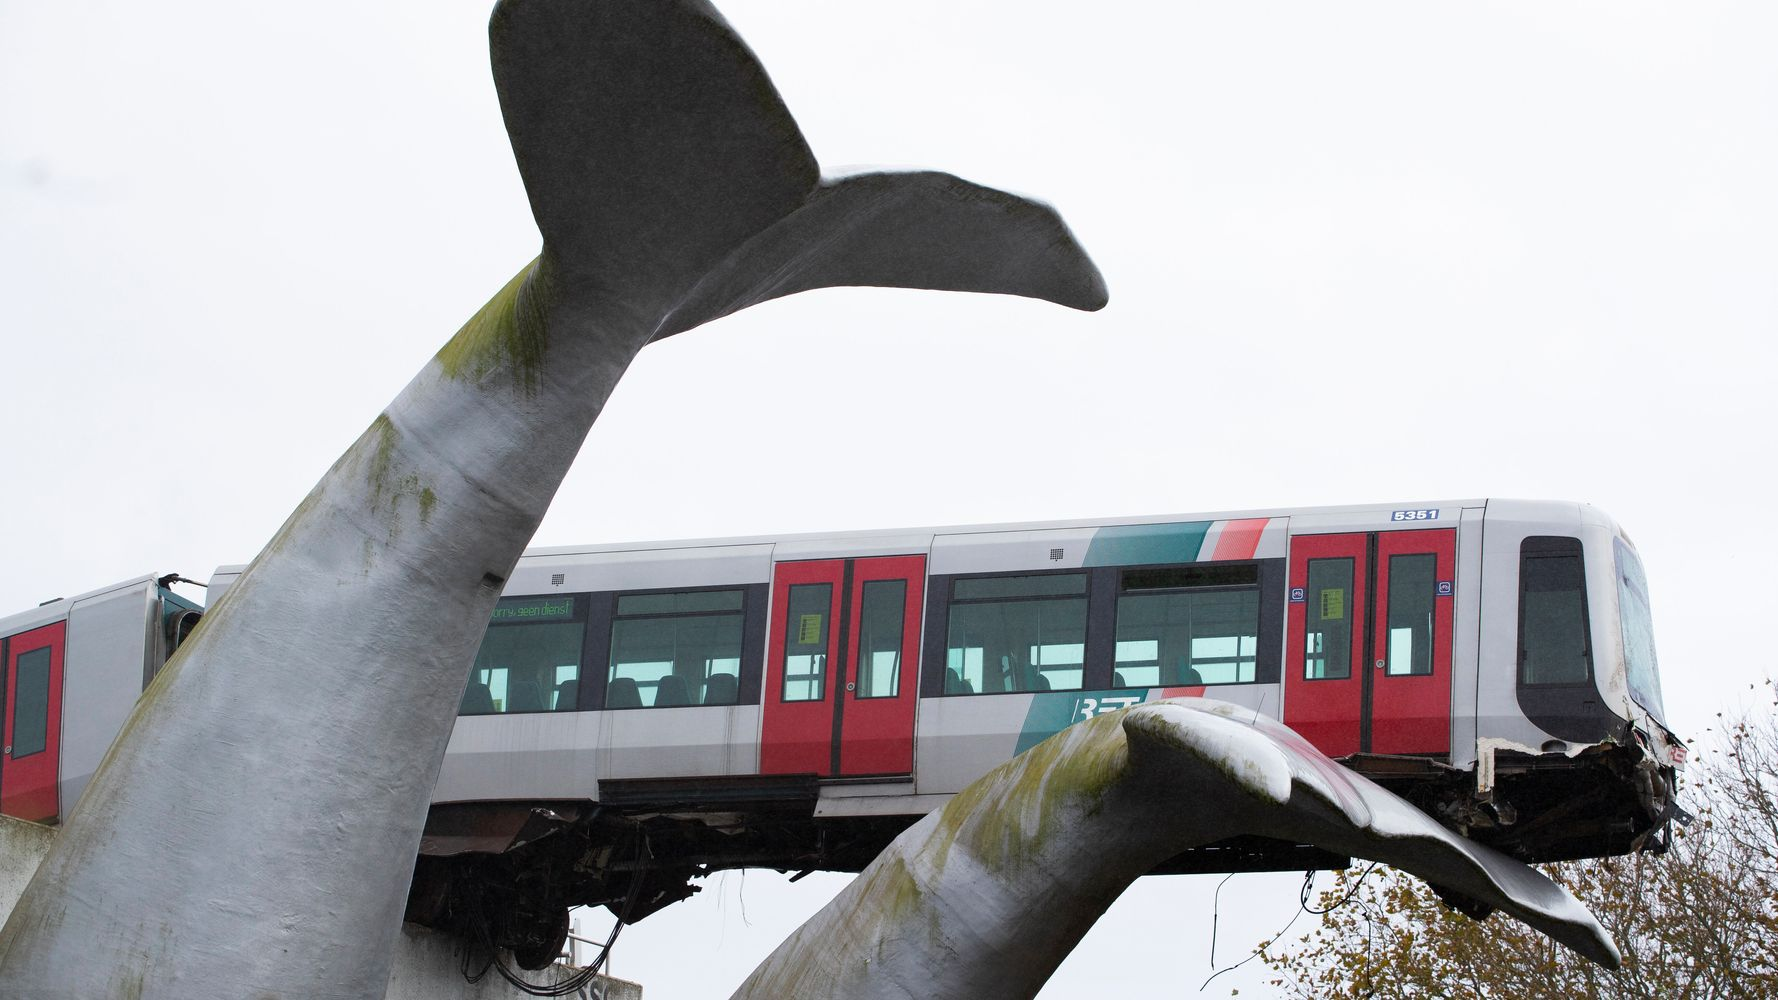 Dutch Metro Trail Gets Caught On Whale Tail Sculpture And Avoids Disaster